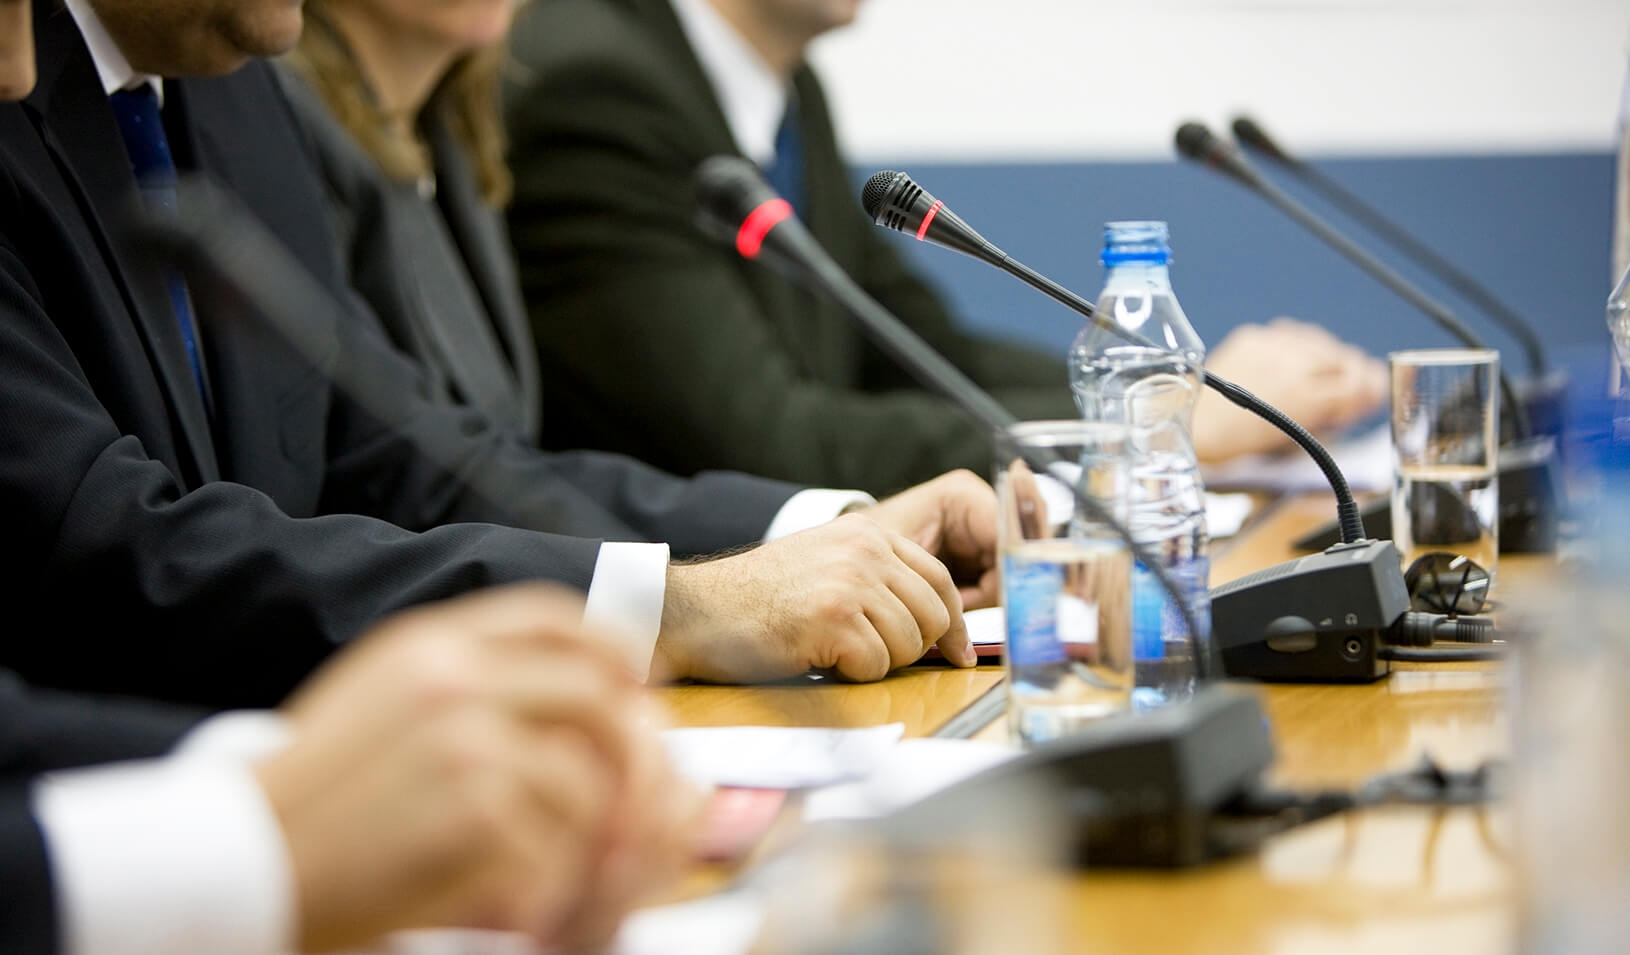 BiEPAG Panel Discussion: The Western Balkans beyond resolution of bilateral issues, Skopje, March 29, 2019